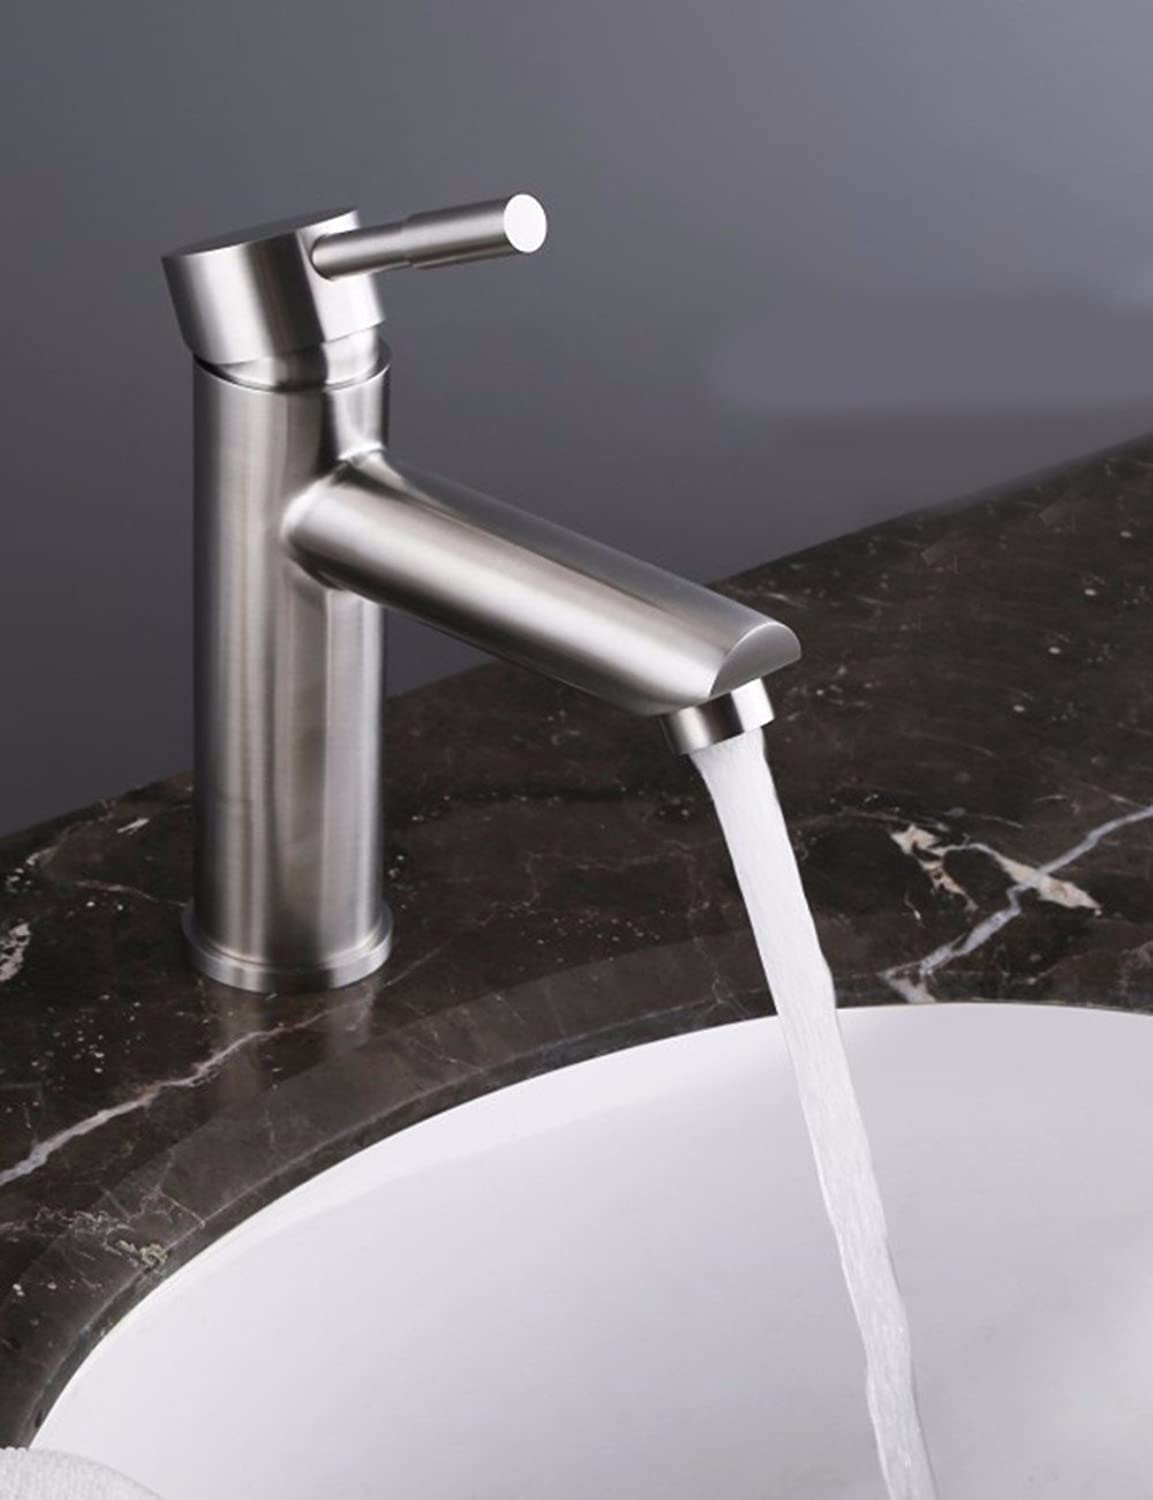 LHbox Basin Mixer Tap Bathroom Sink Faucet 304 Stainless Steel faucet, lead-free hot and cold water basin faucet, Washbasin Faucet, turn on the tub faucet,